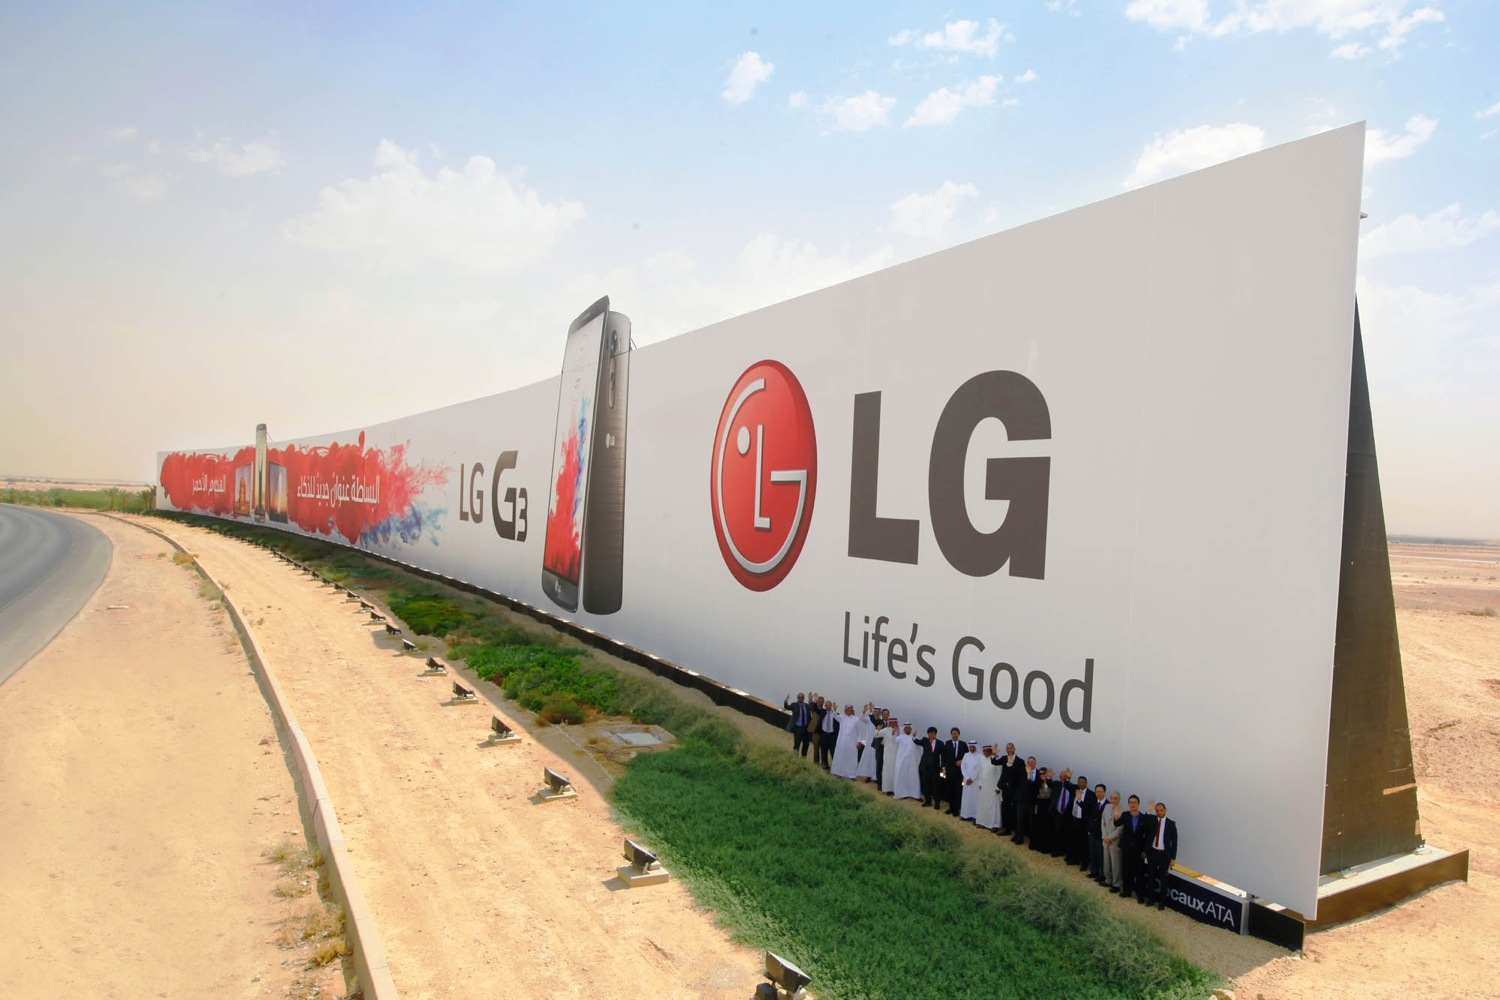 Behold LG's Enormous Record Breaking Ad